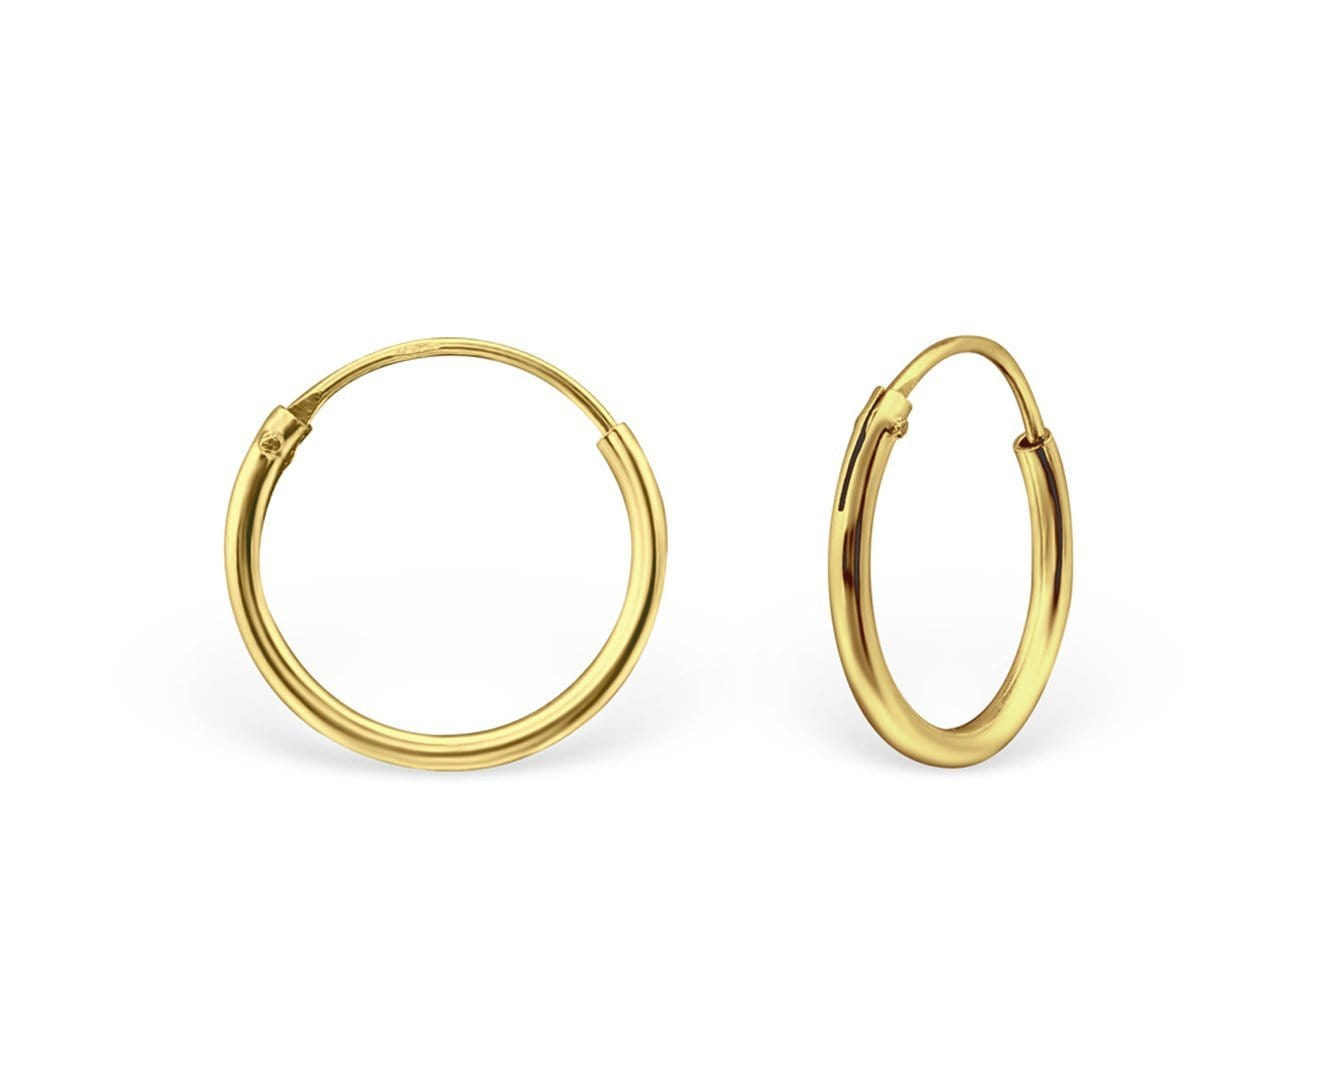 12mm Gold Plated Silver Hoop Earrings